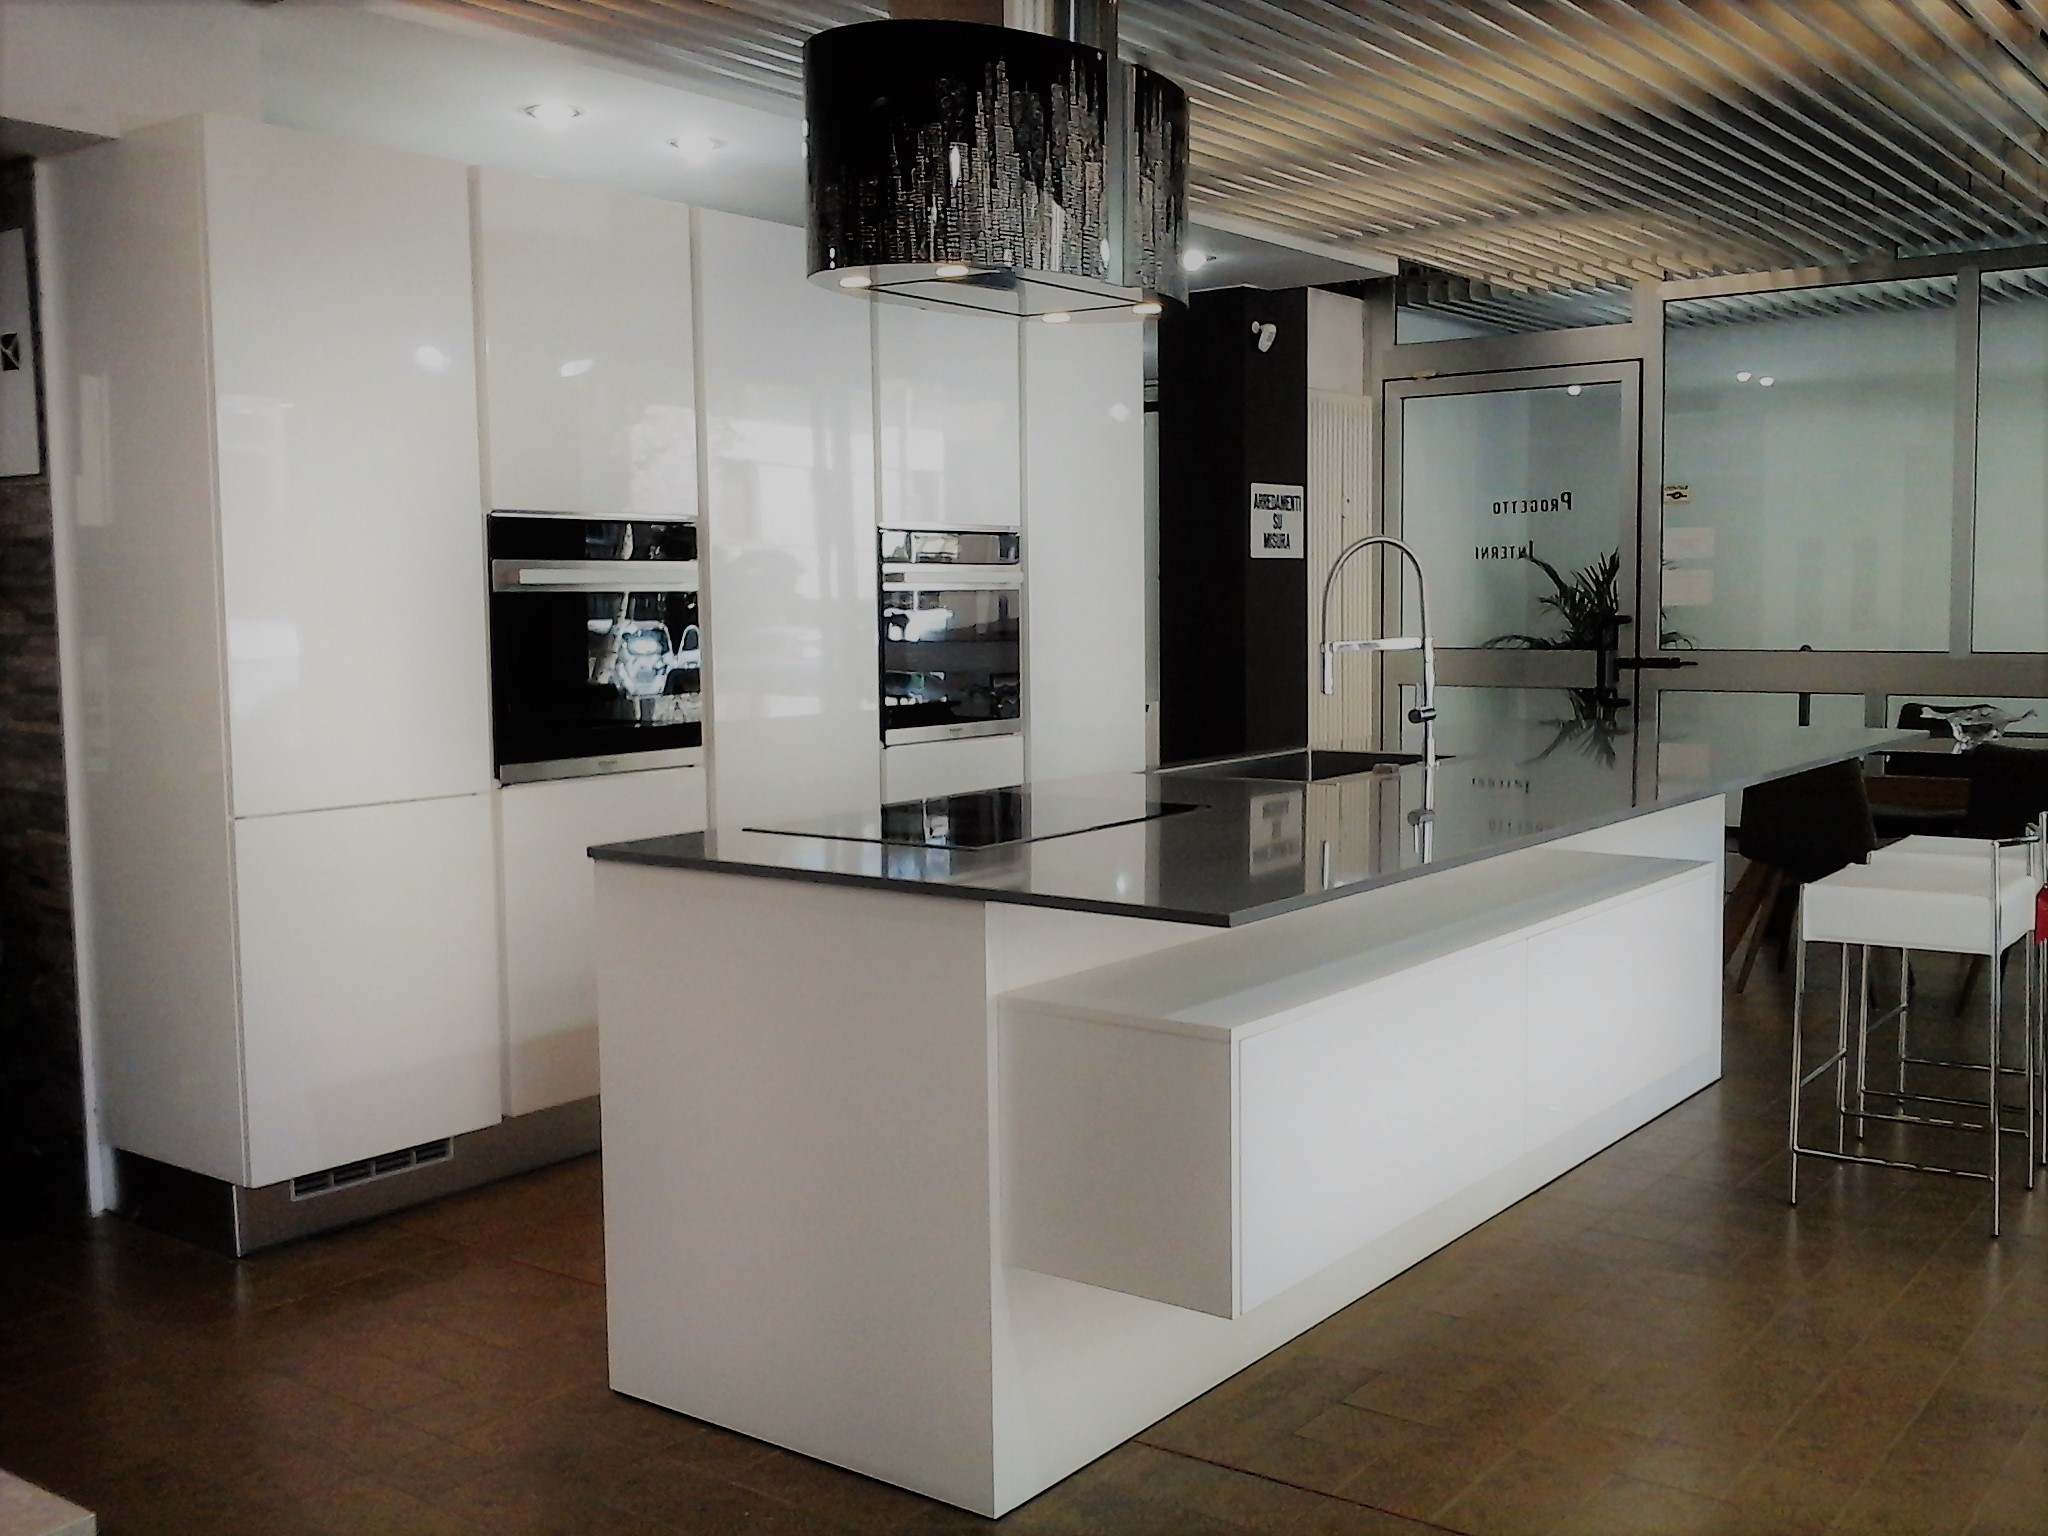 Best aster cucine prezzi contemporary ideas design - Aster cucine outlet ...